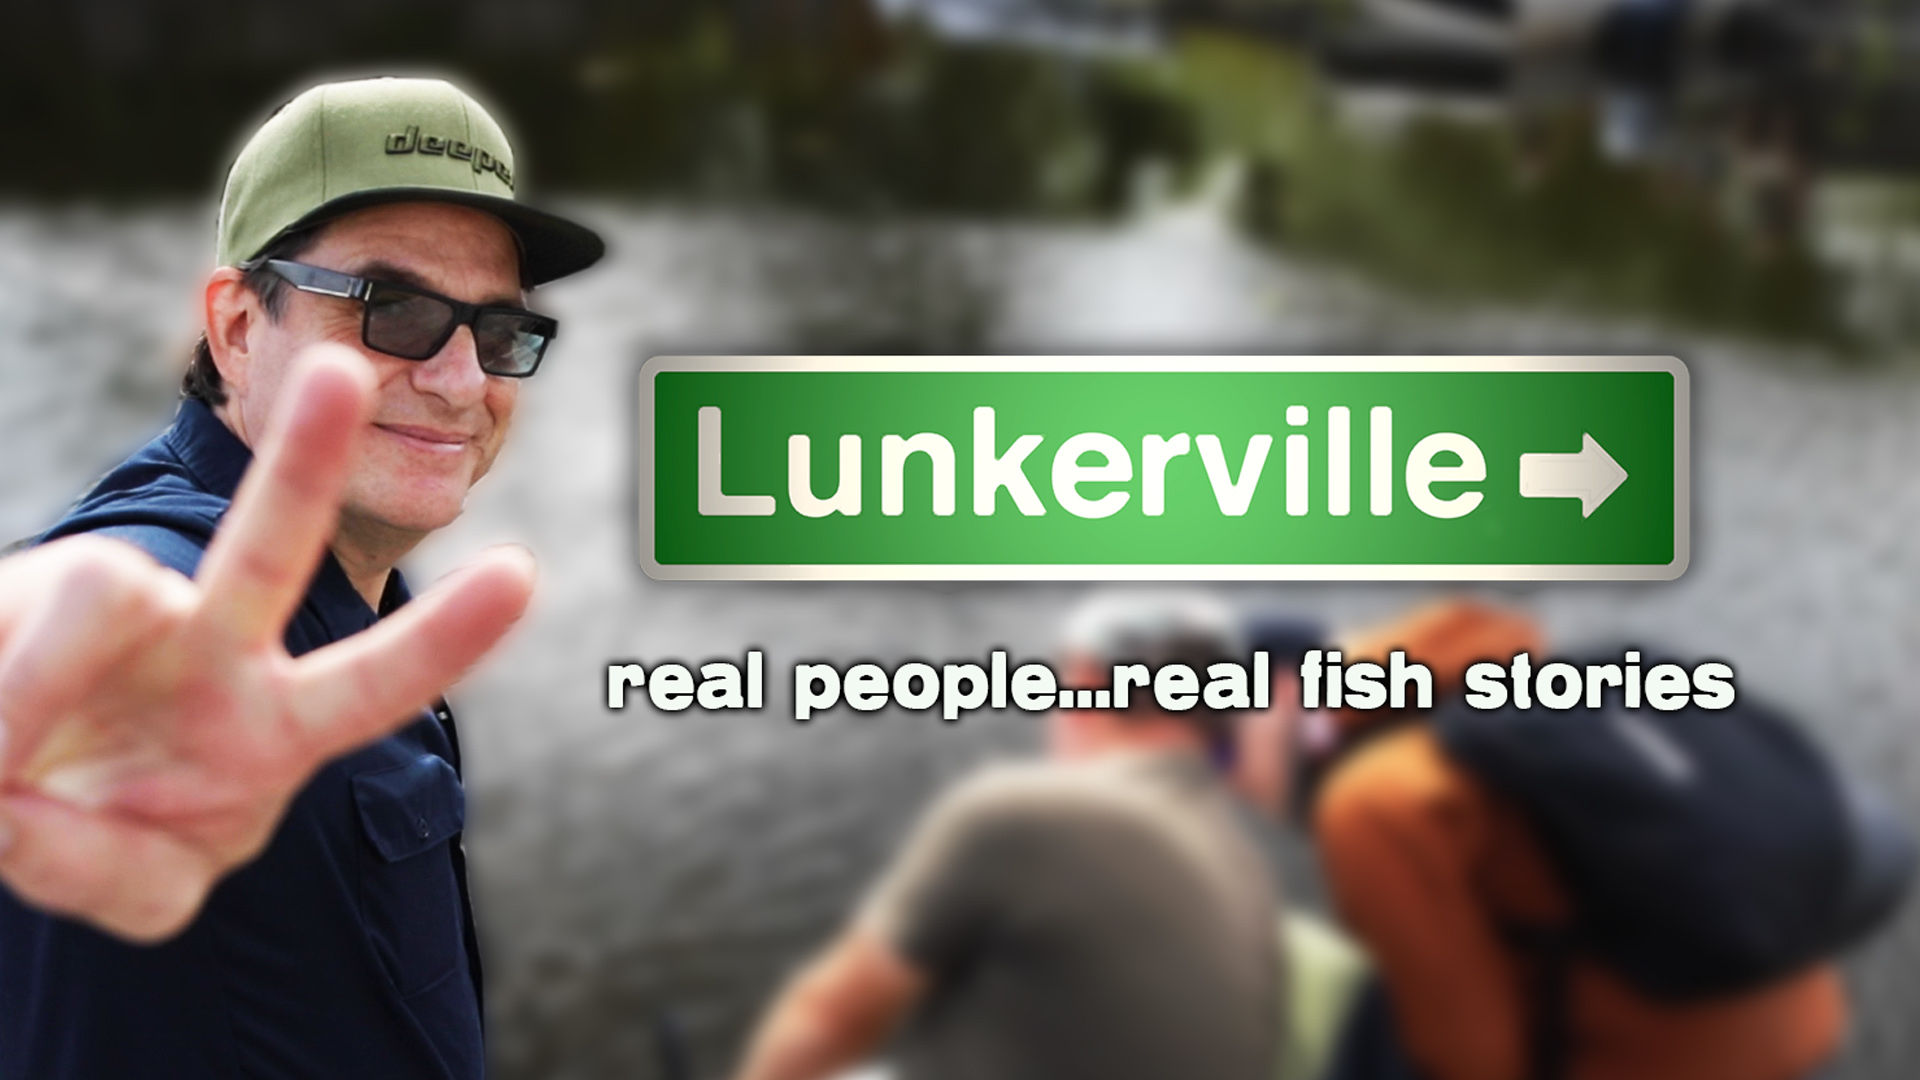 Lunkerville